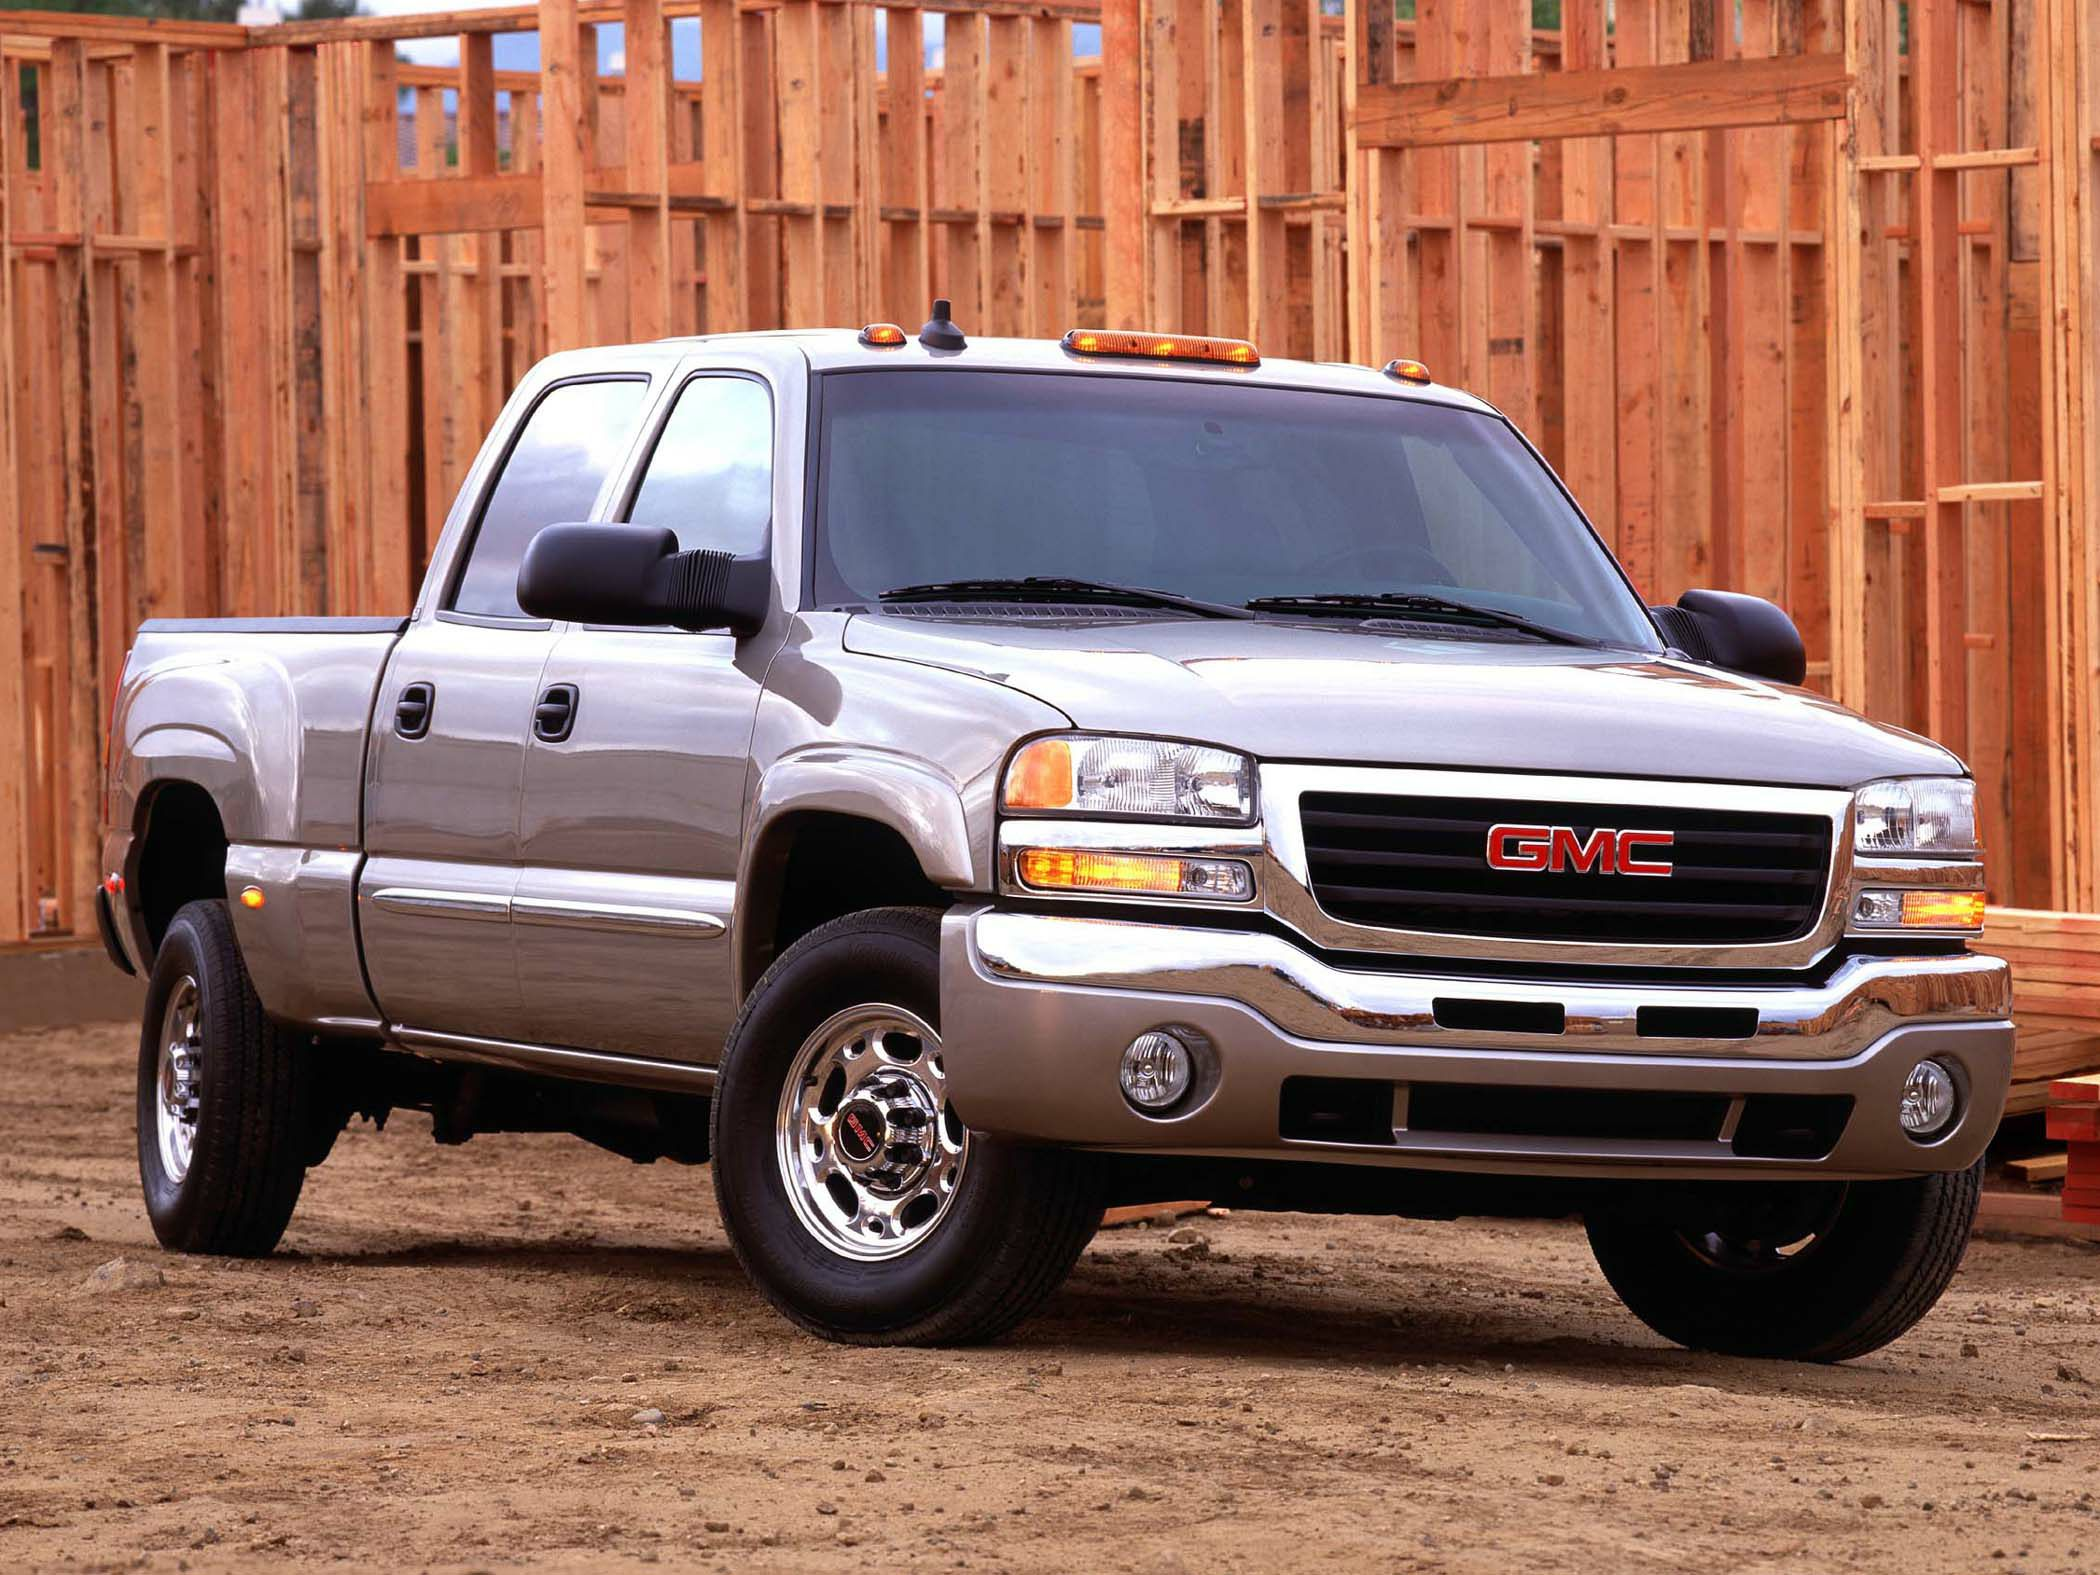 2010 Gmc Sierra For Sale >> 2003 GMC Sierra 1500 Reviews, Specs and Prices | Cars.com